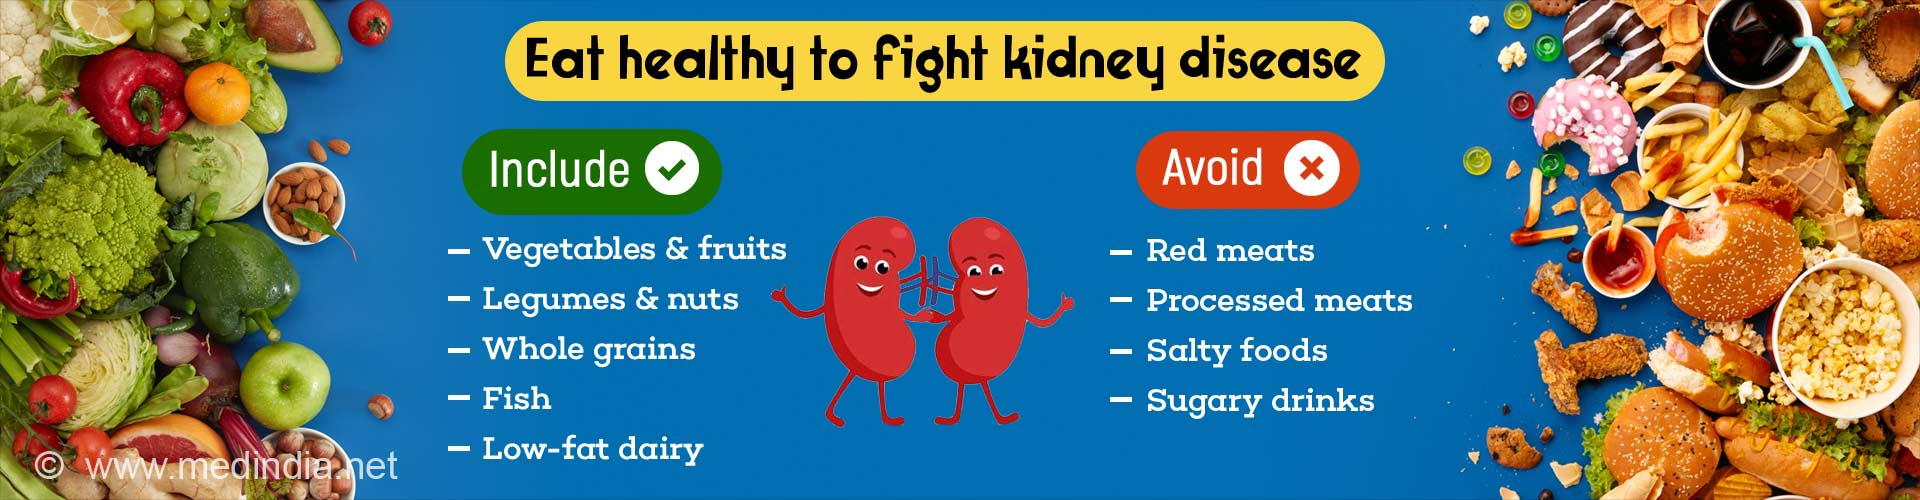 Eat healthy to fight kidney disease. Include: Vegetables and fruit, legumes and nuts, whole grains, fish, and low-fat dairy products. Avoid: Red meats, processed meats, salty foods and sugary drinks.